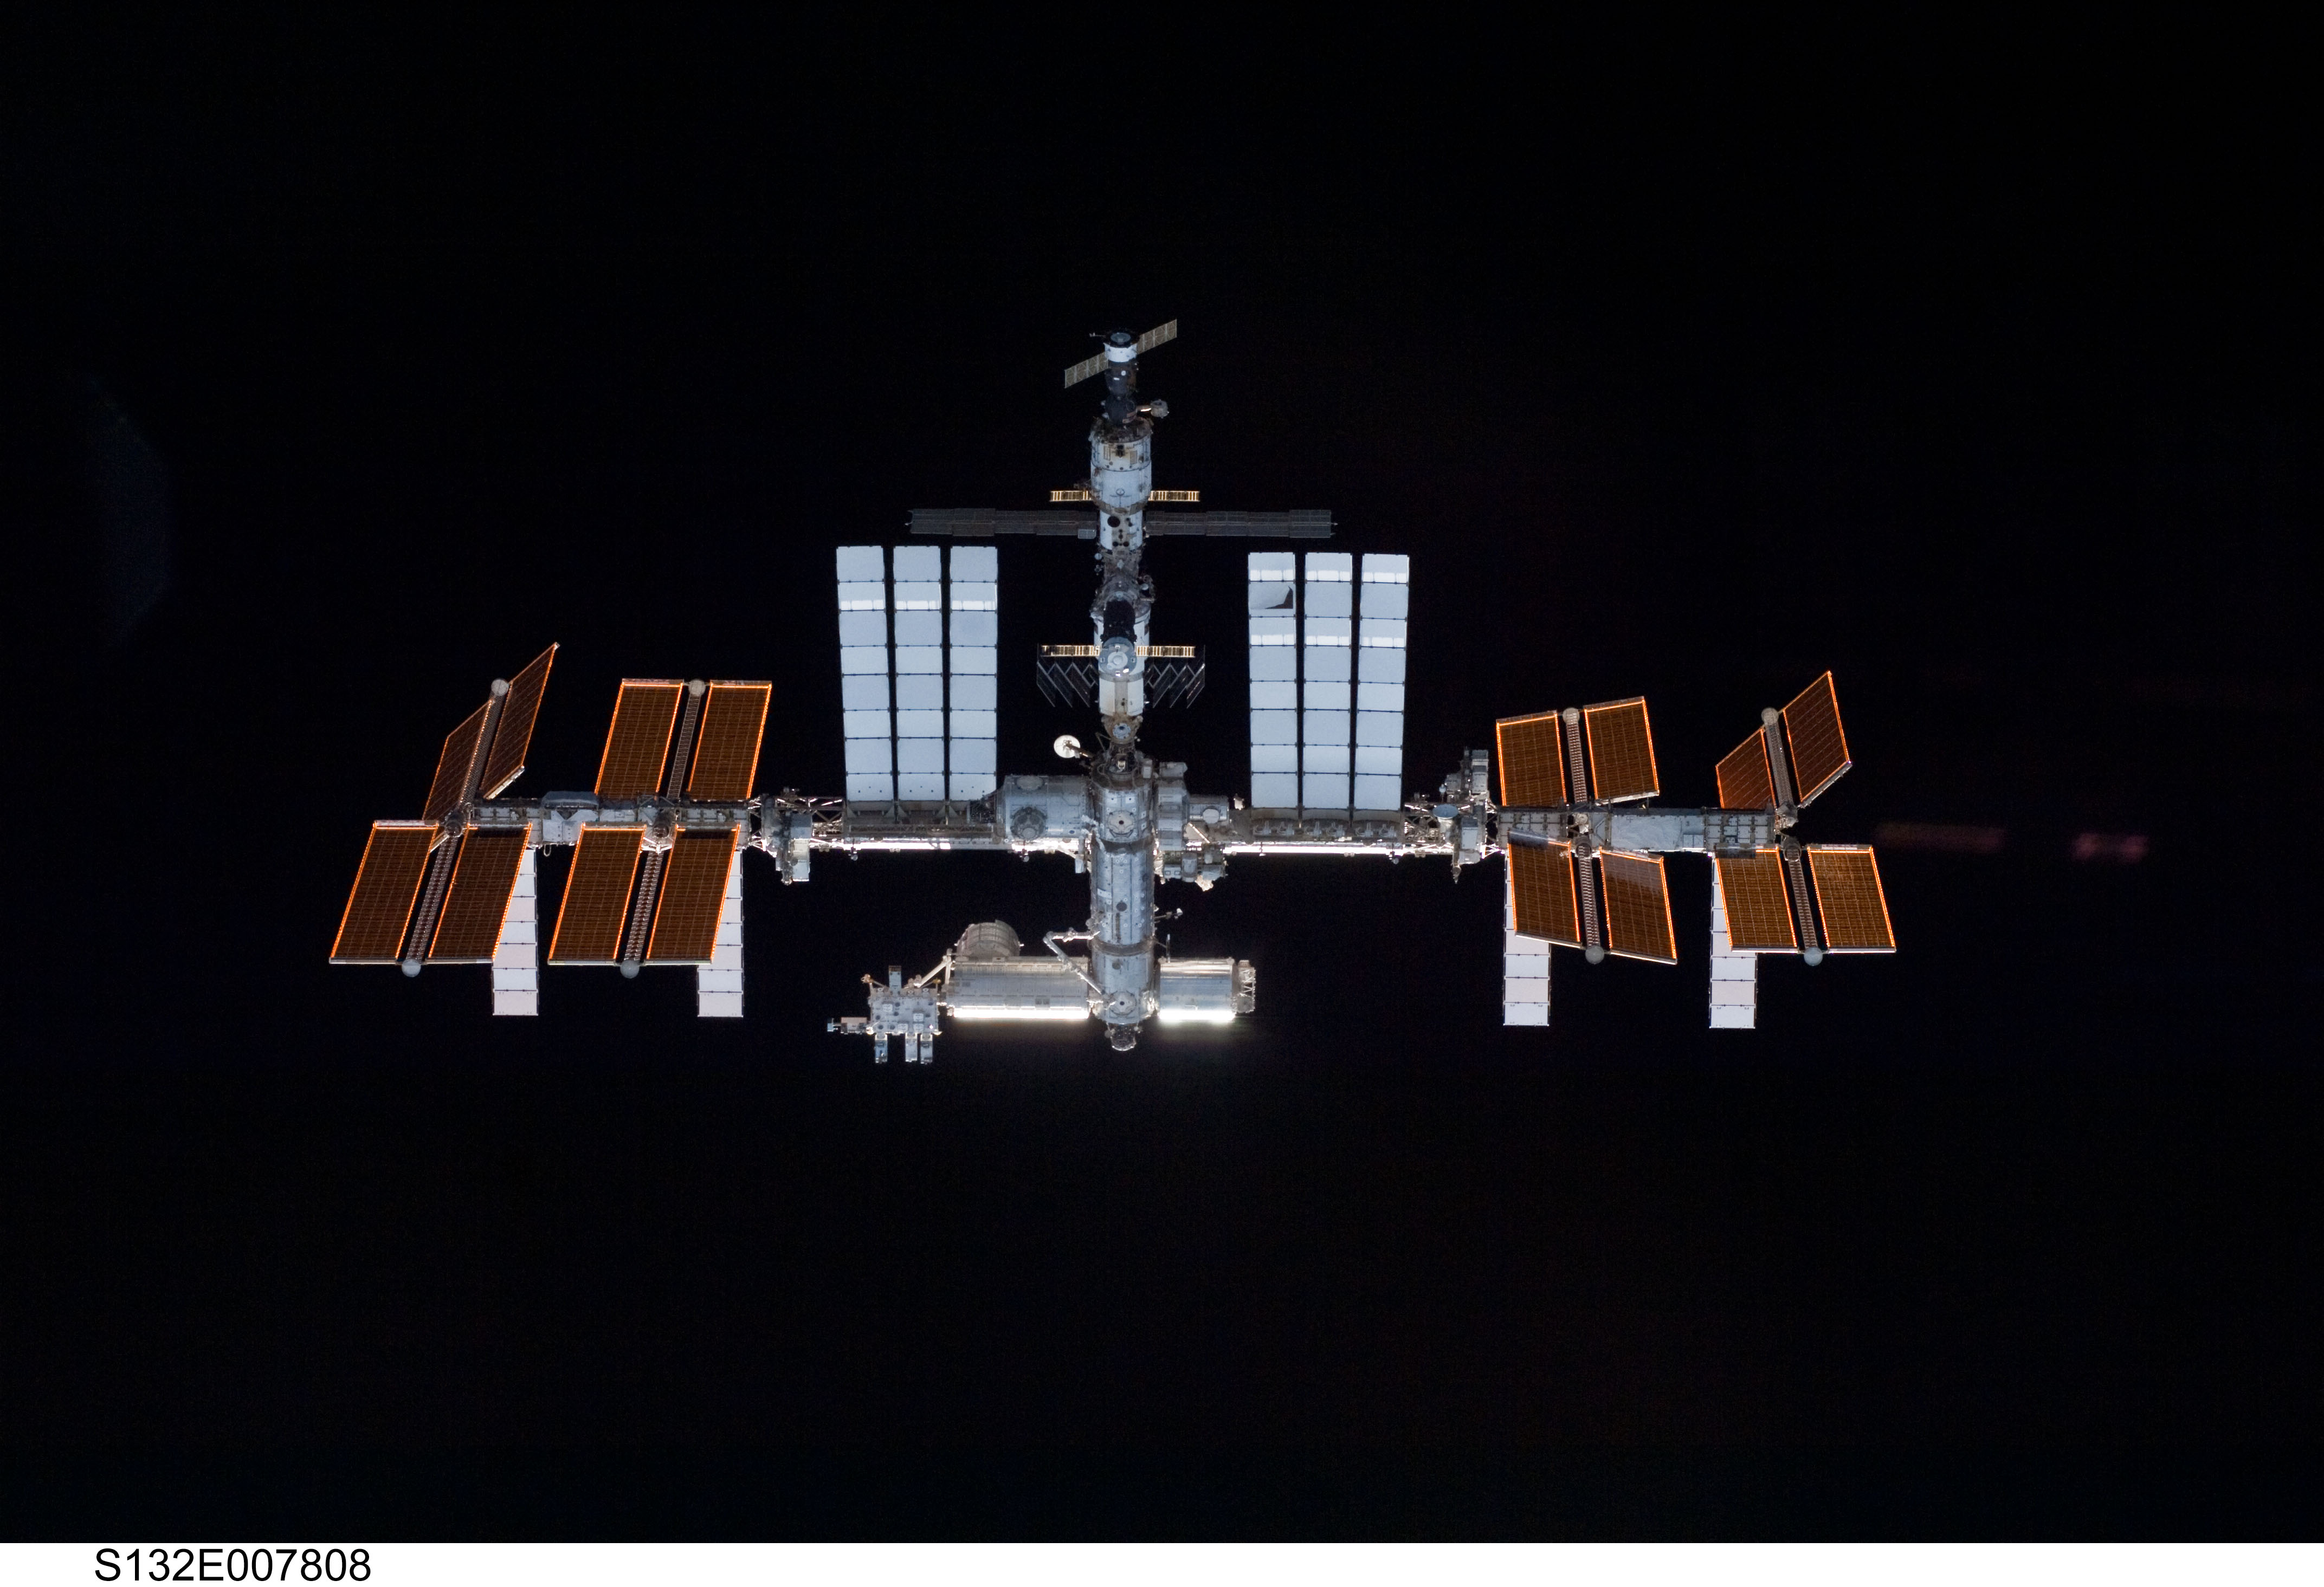 ISS-15